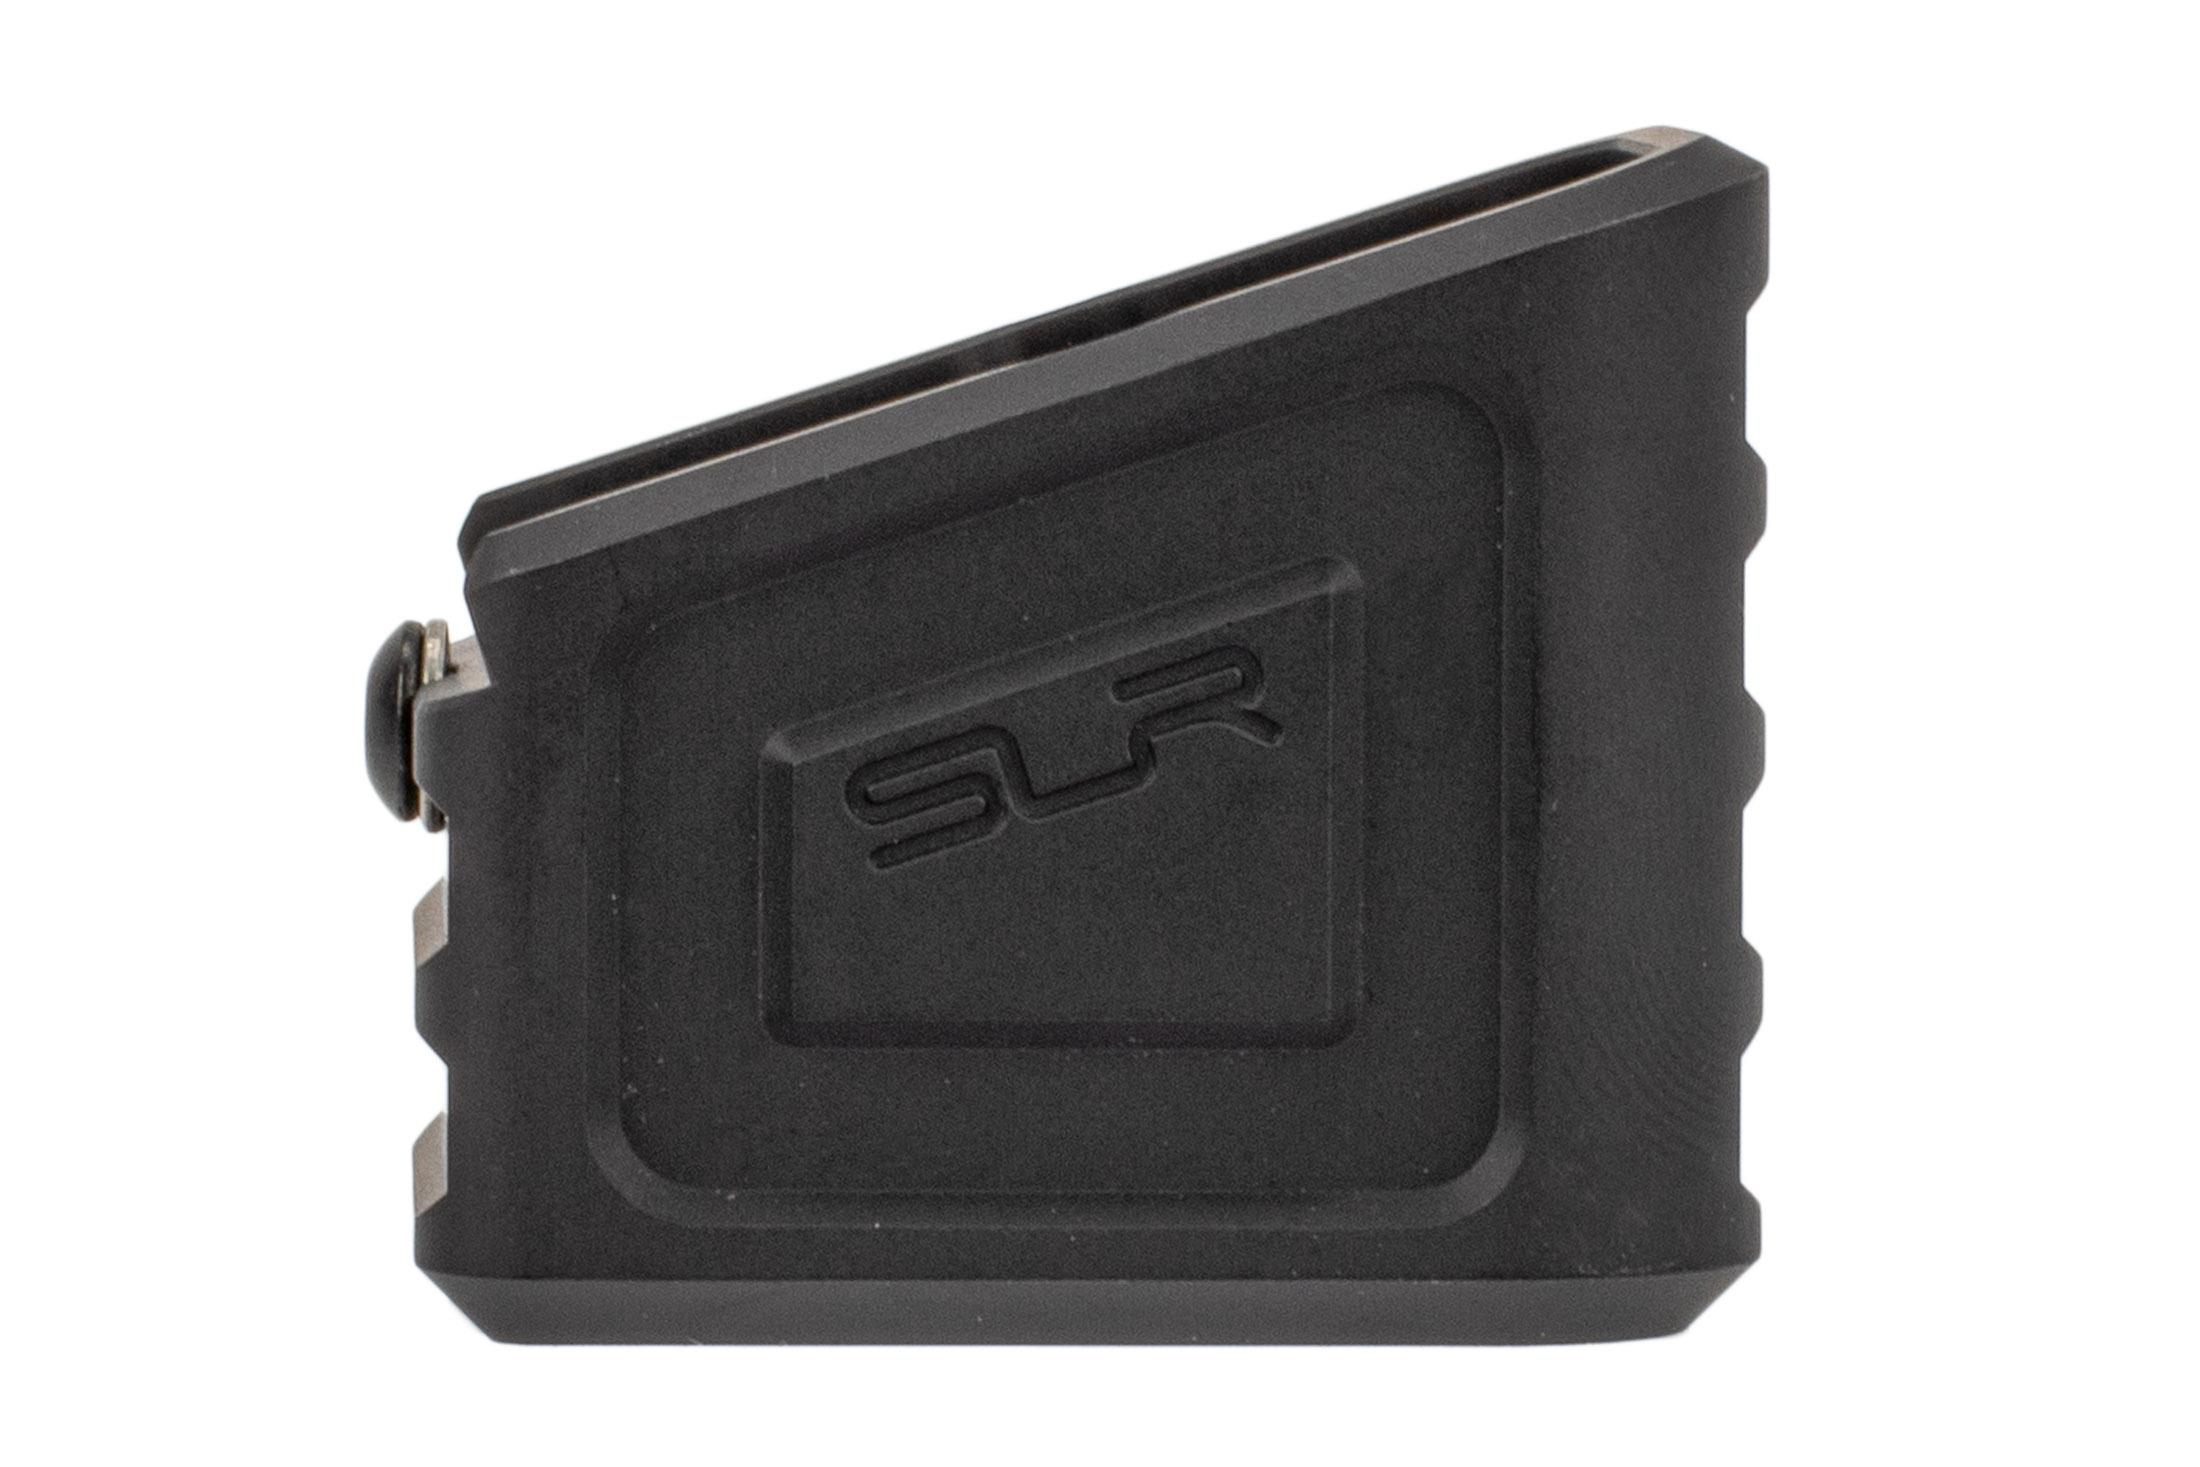 SLR Rifleworks magazine extension fits Glock 21 magazines from Glock or ETS. +4 capacity, spring sold seperately.